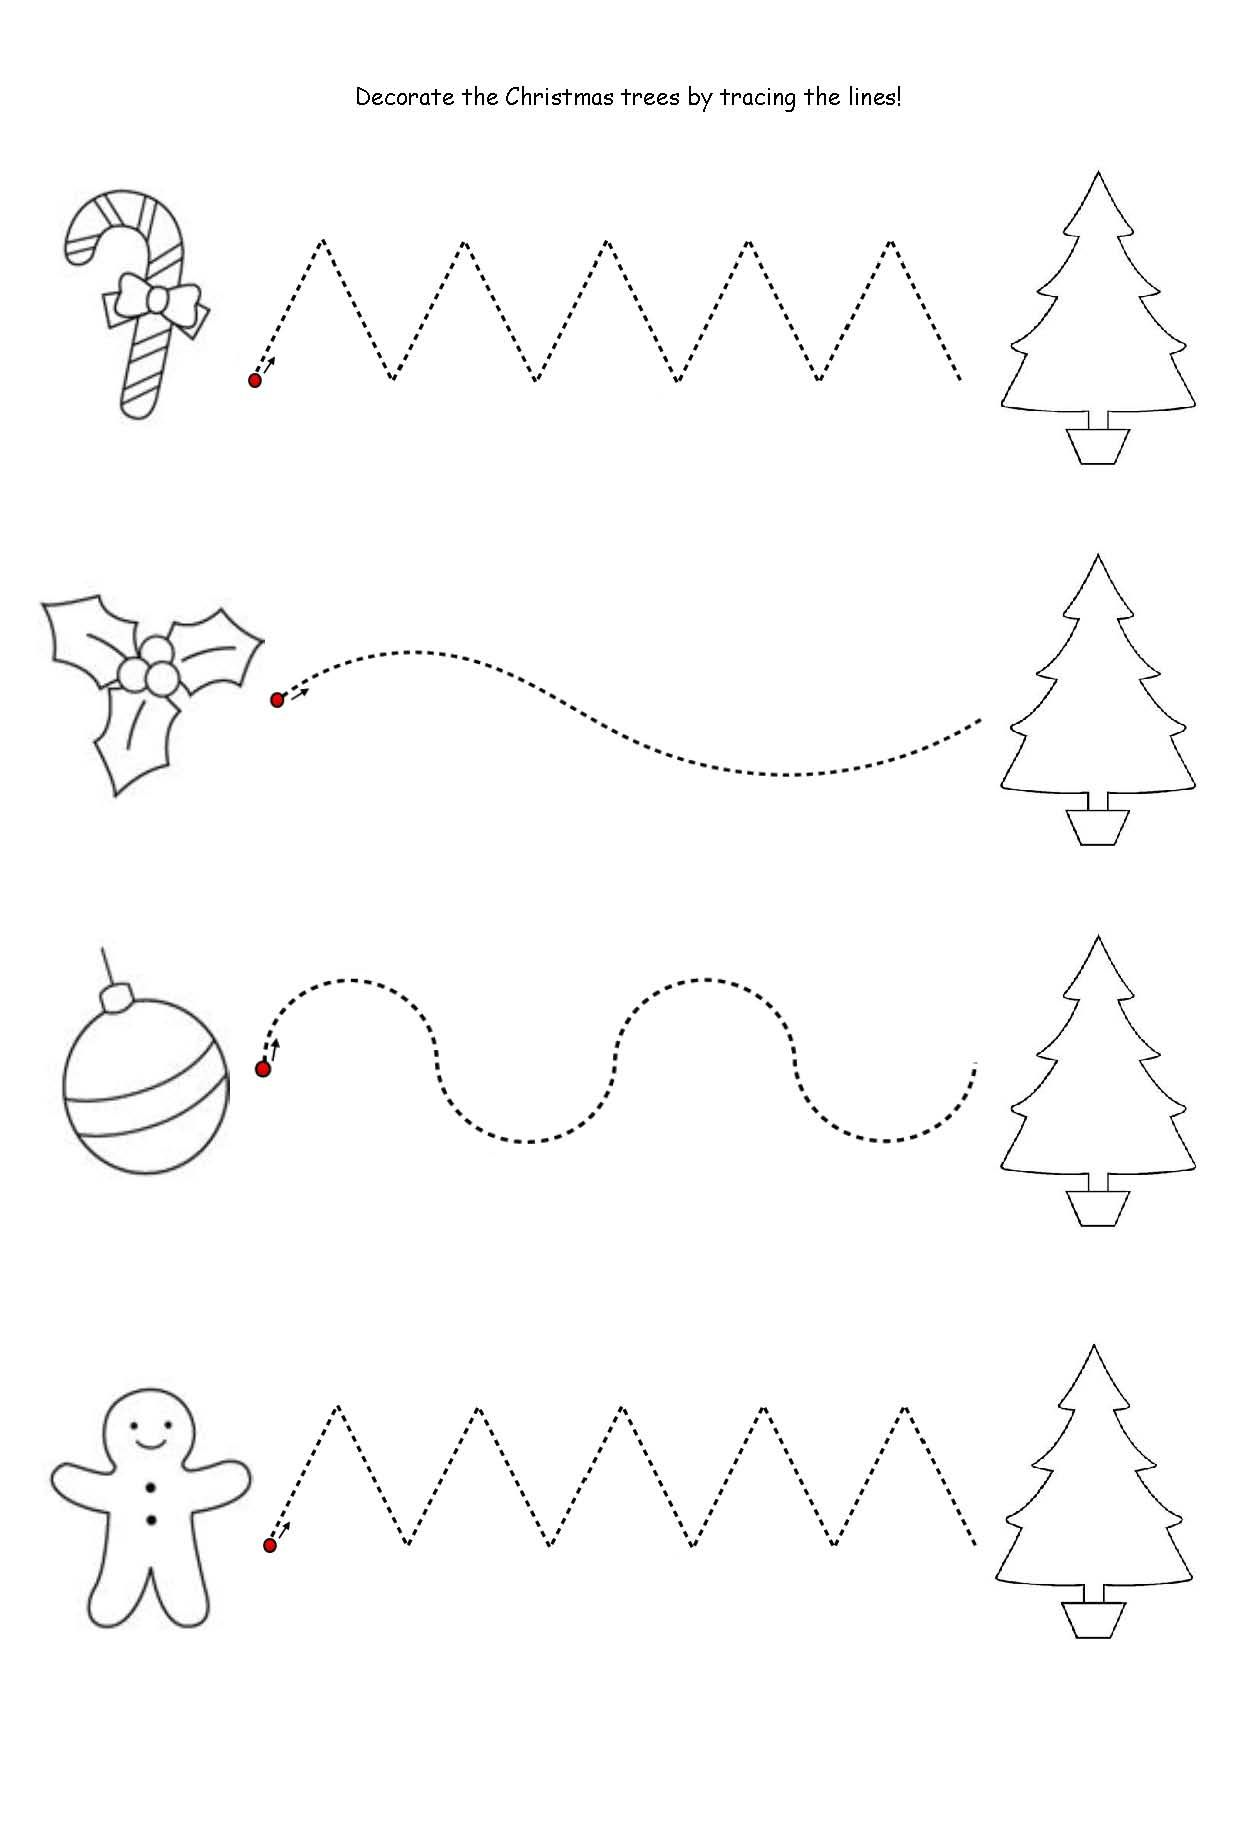 Get The Kids Tracing Lines To Match The Decoration To The